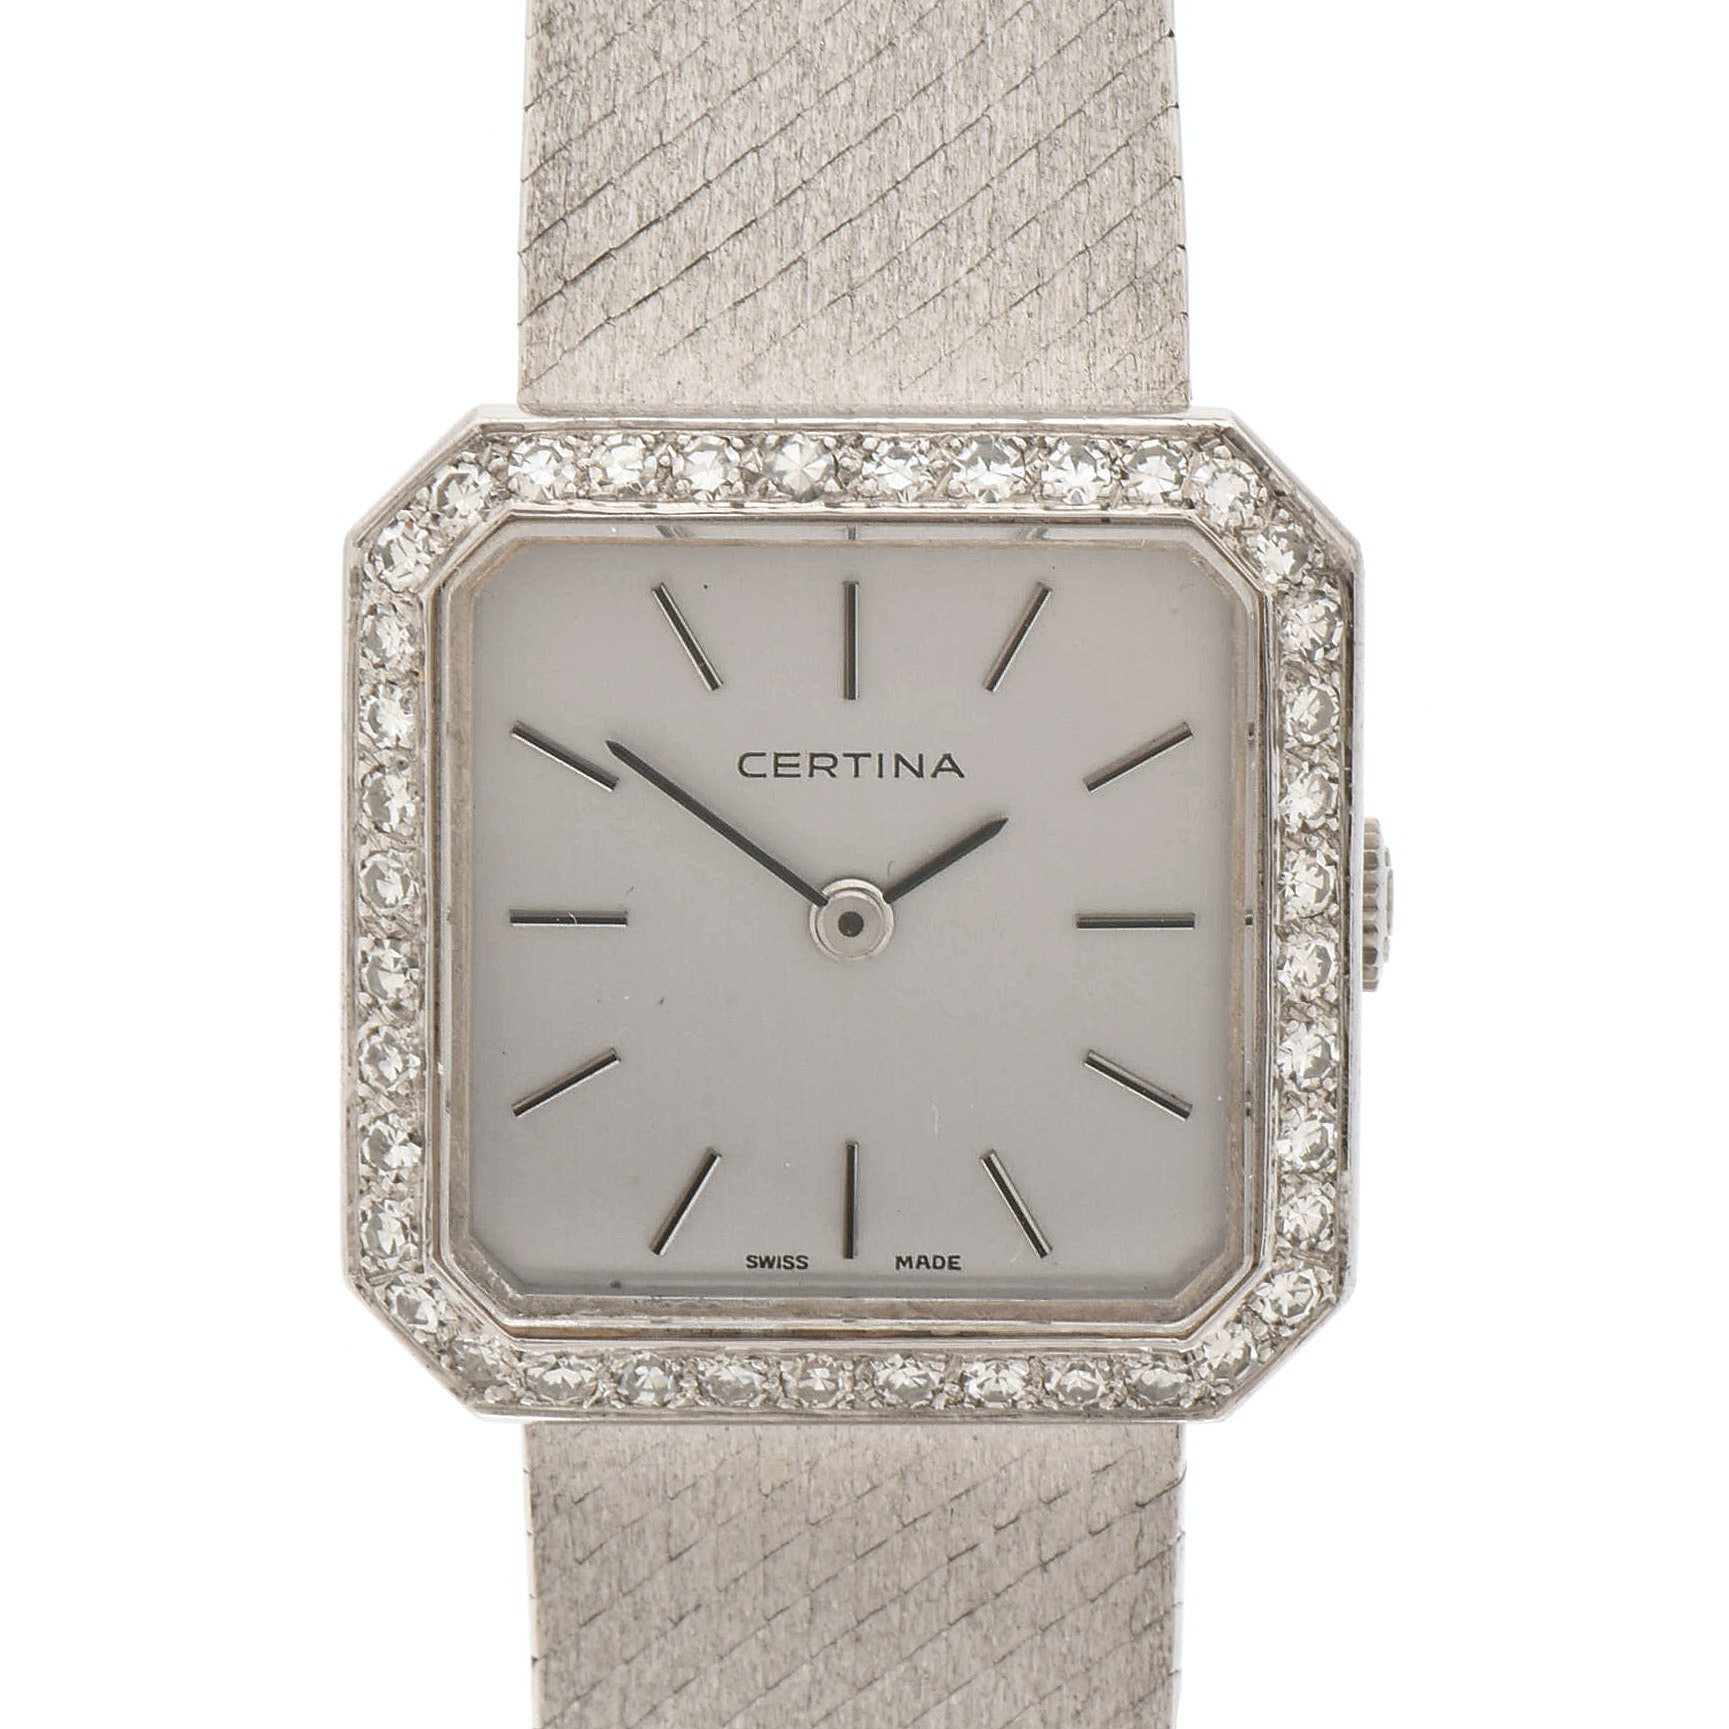 Certina 18K White Gold and Diamond Bezel Wristwatch, Circa 1965